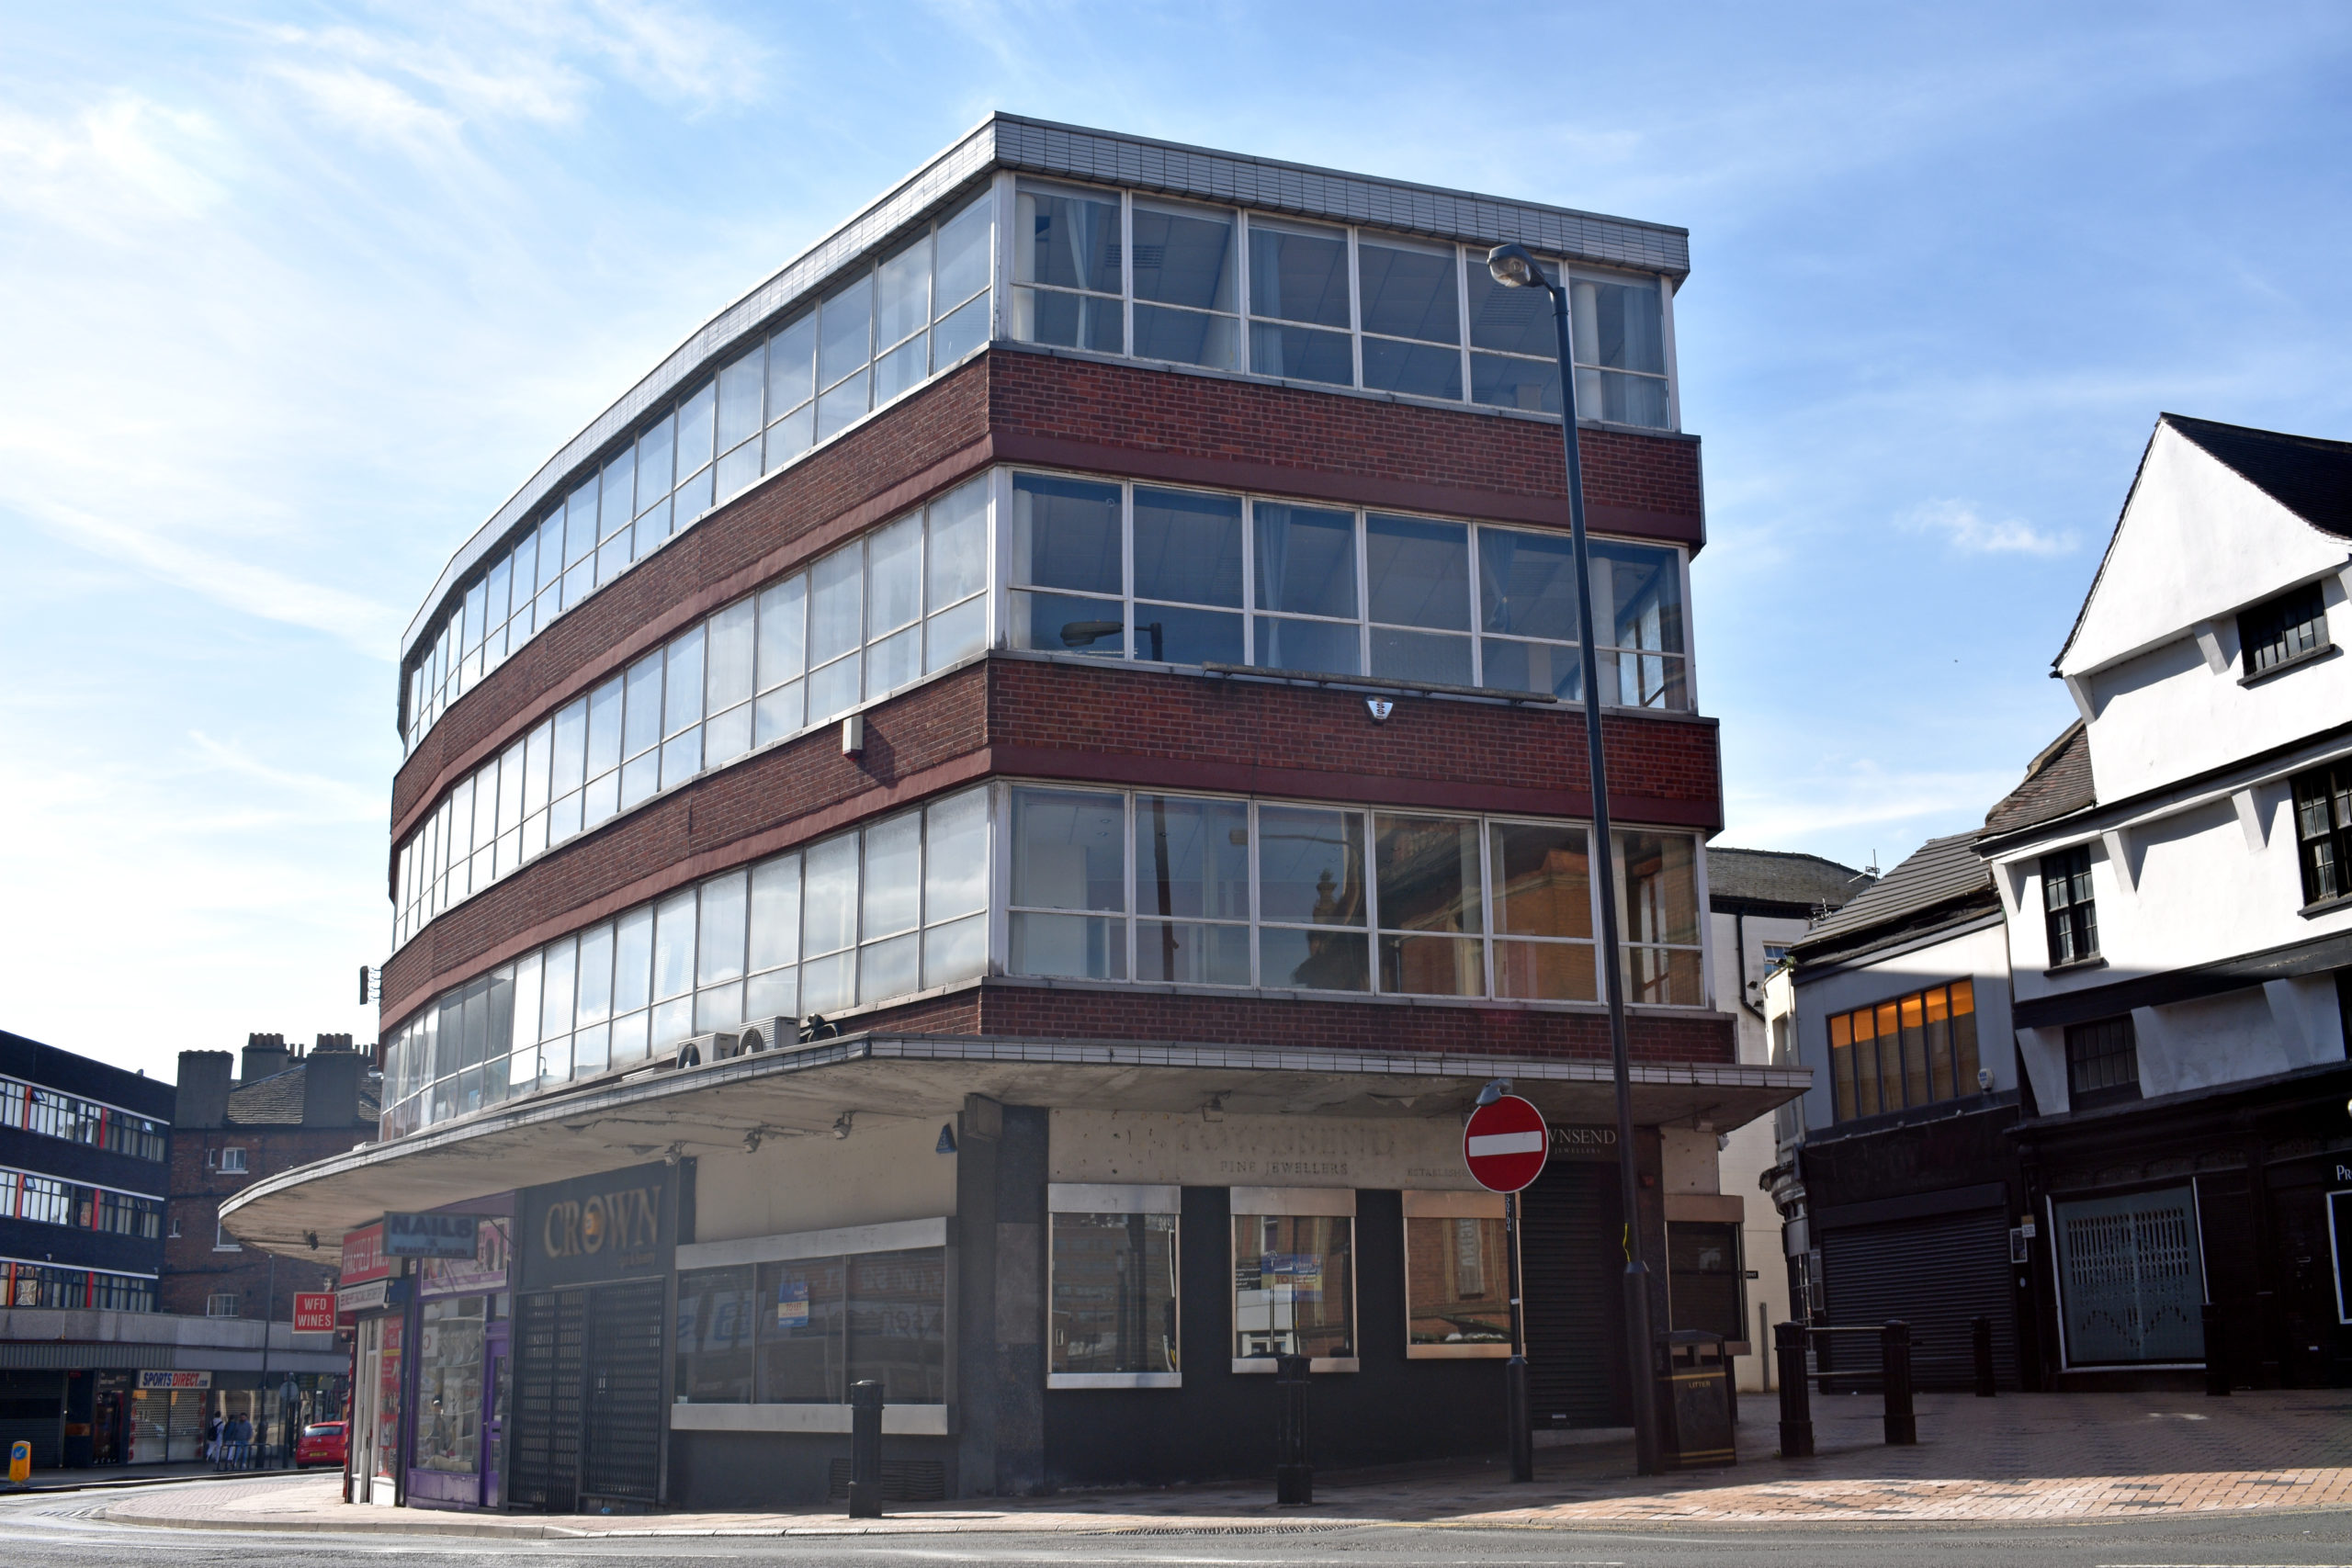 The exterior of Marygate House in the heart of Wakefield city centre